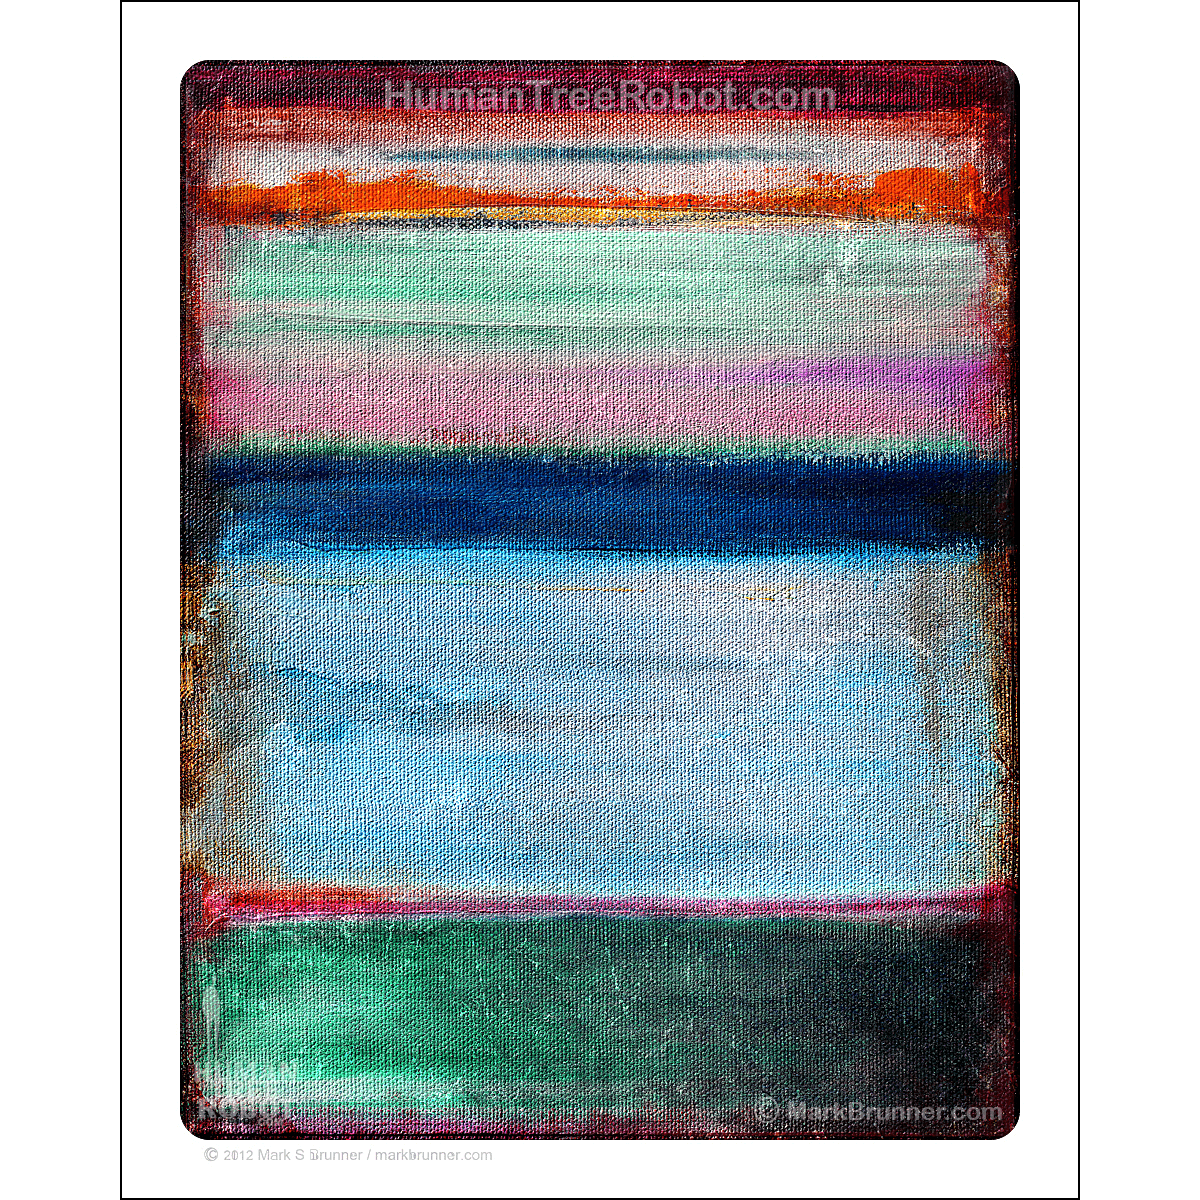 "8012 - Matte Paper Print 8x10"" - Abstract - Colors 01 - Blue"